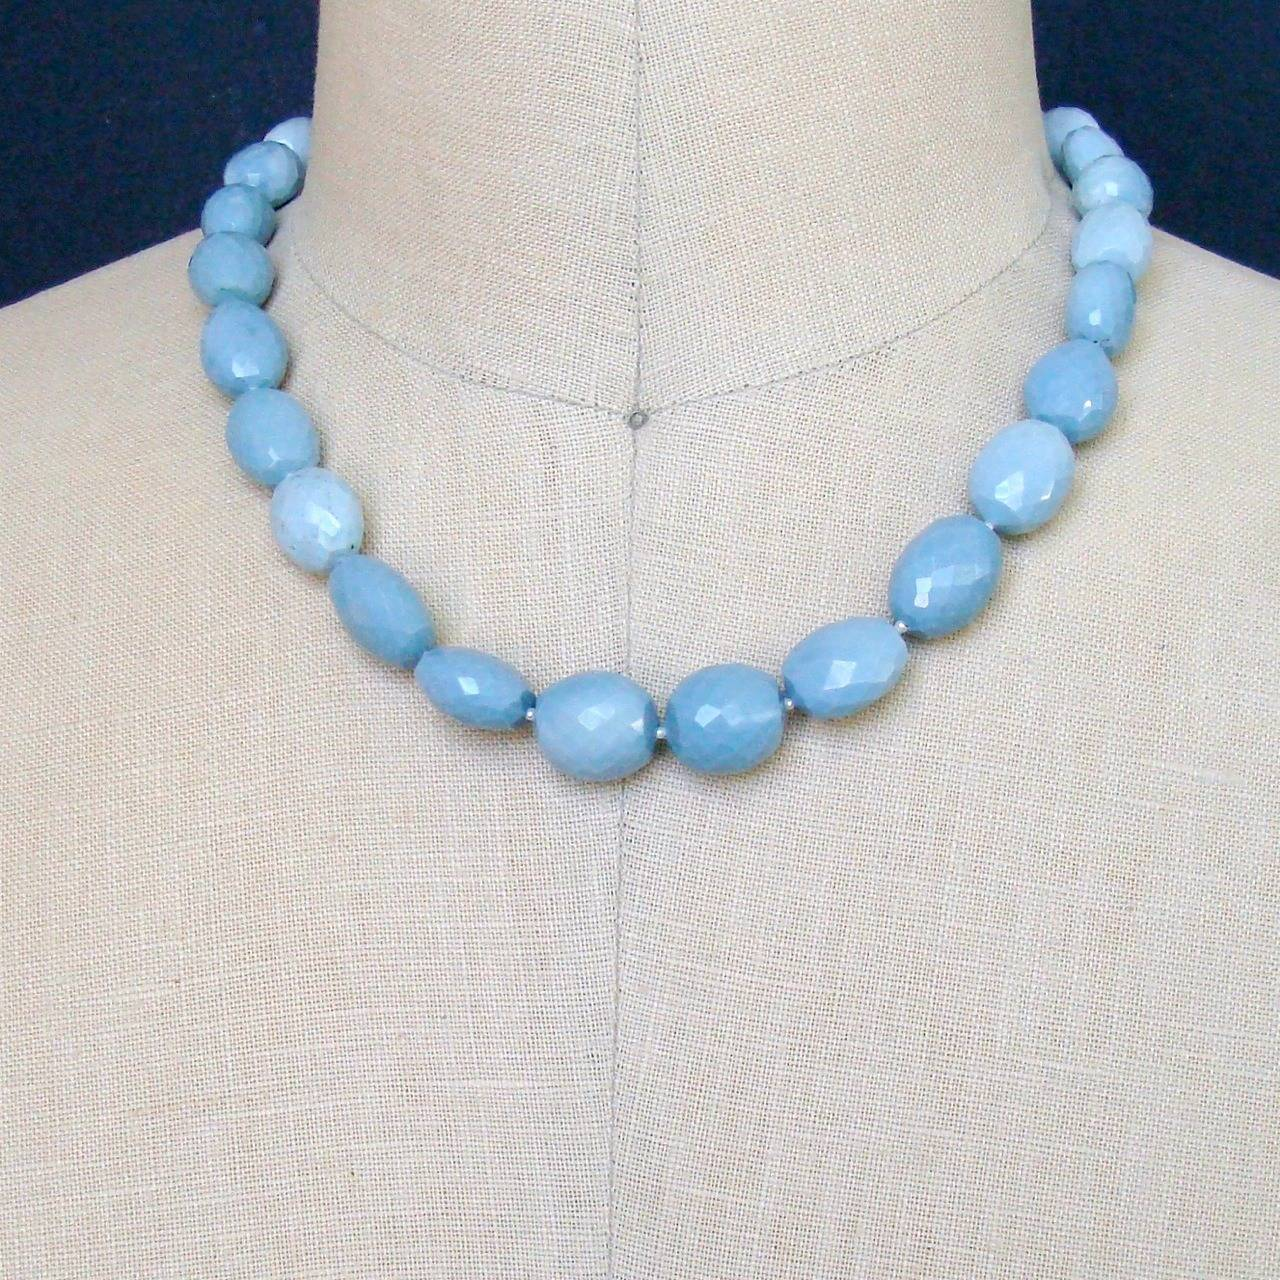 Blue Opal Mother of Pearl Inlay Choker Necklace In New Condition For Sale In Scottsdale, AZ